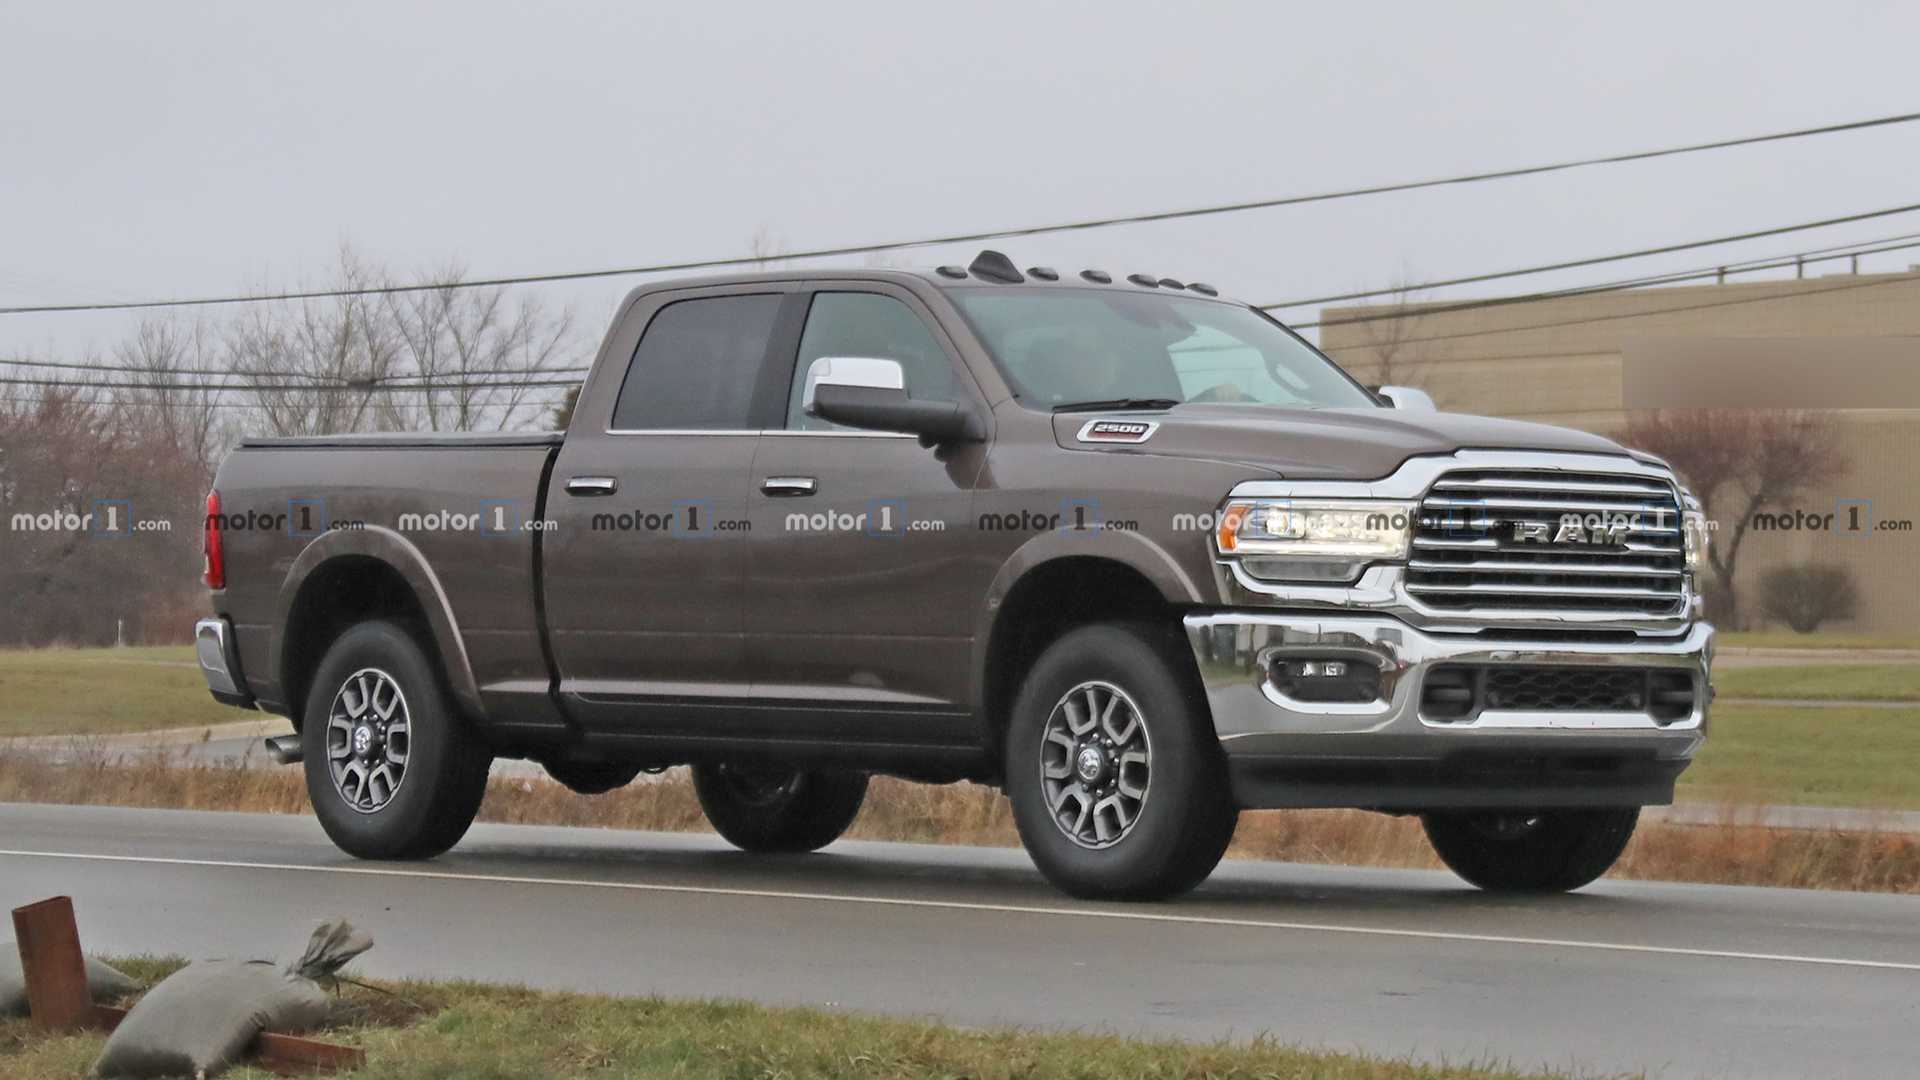 80 Concept of 2020 Ram 2500 Diesel Price and Review with 2020 Ram 2500 Diesel